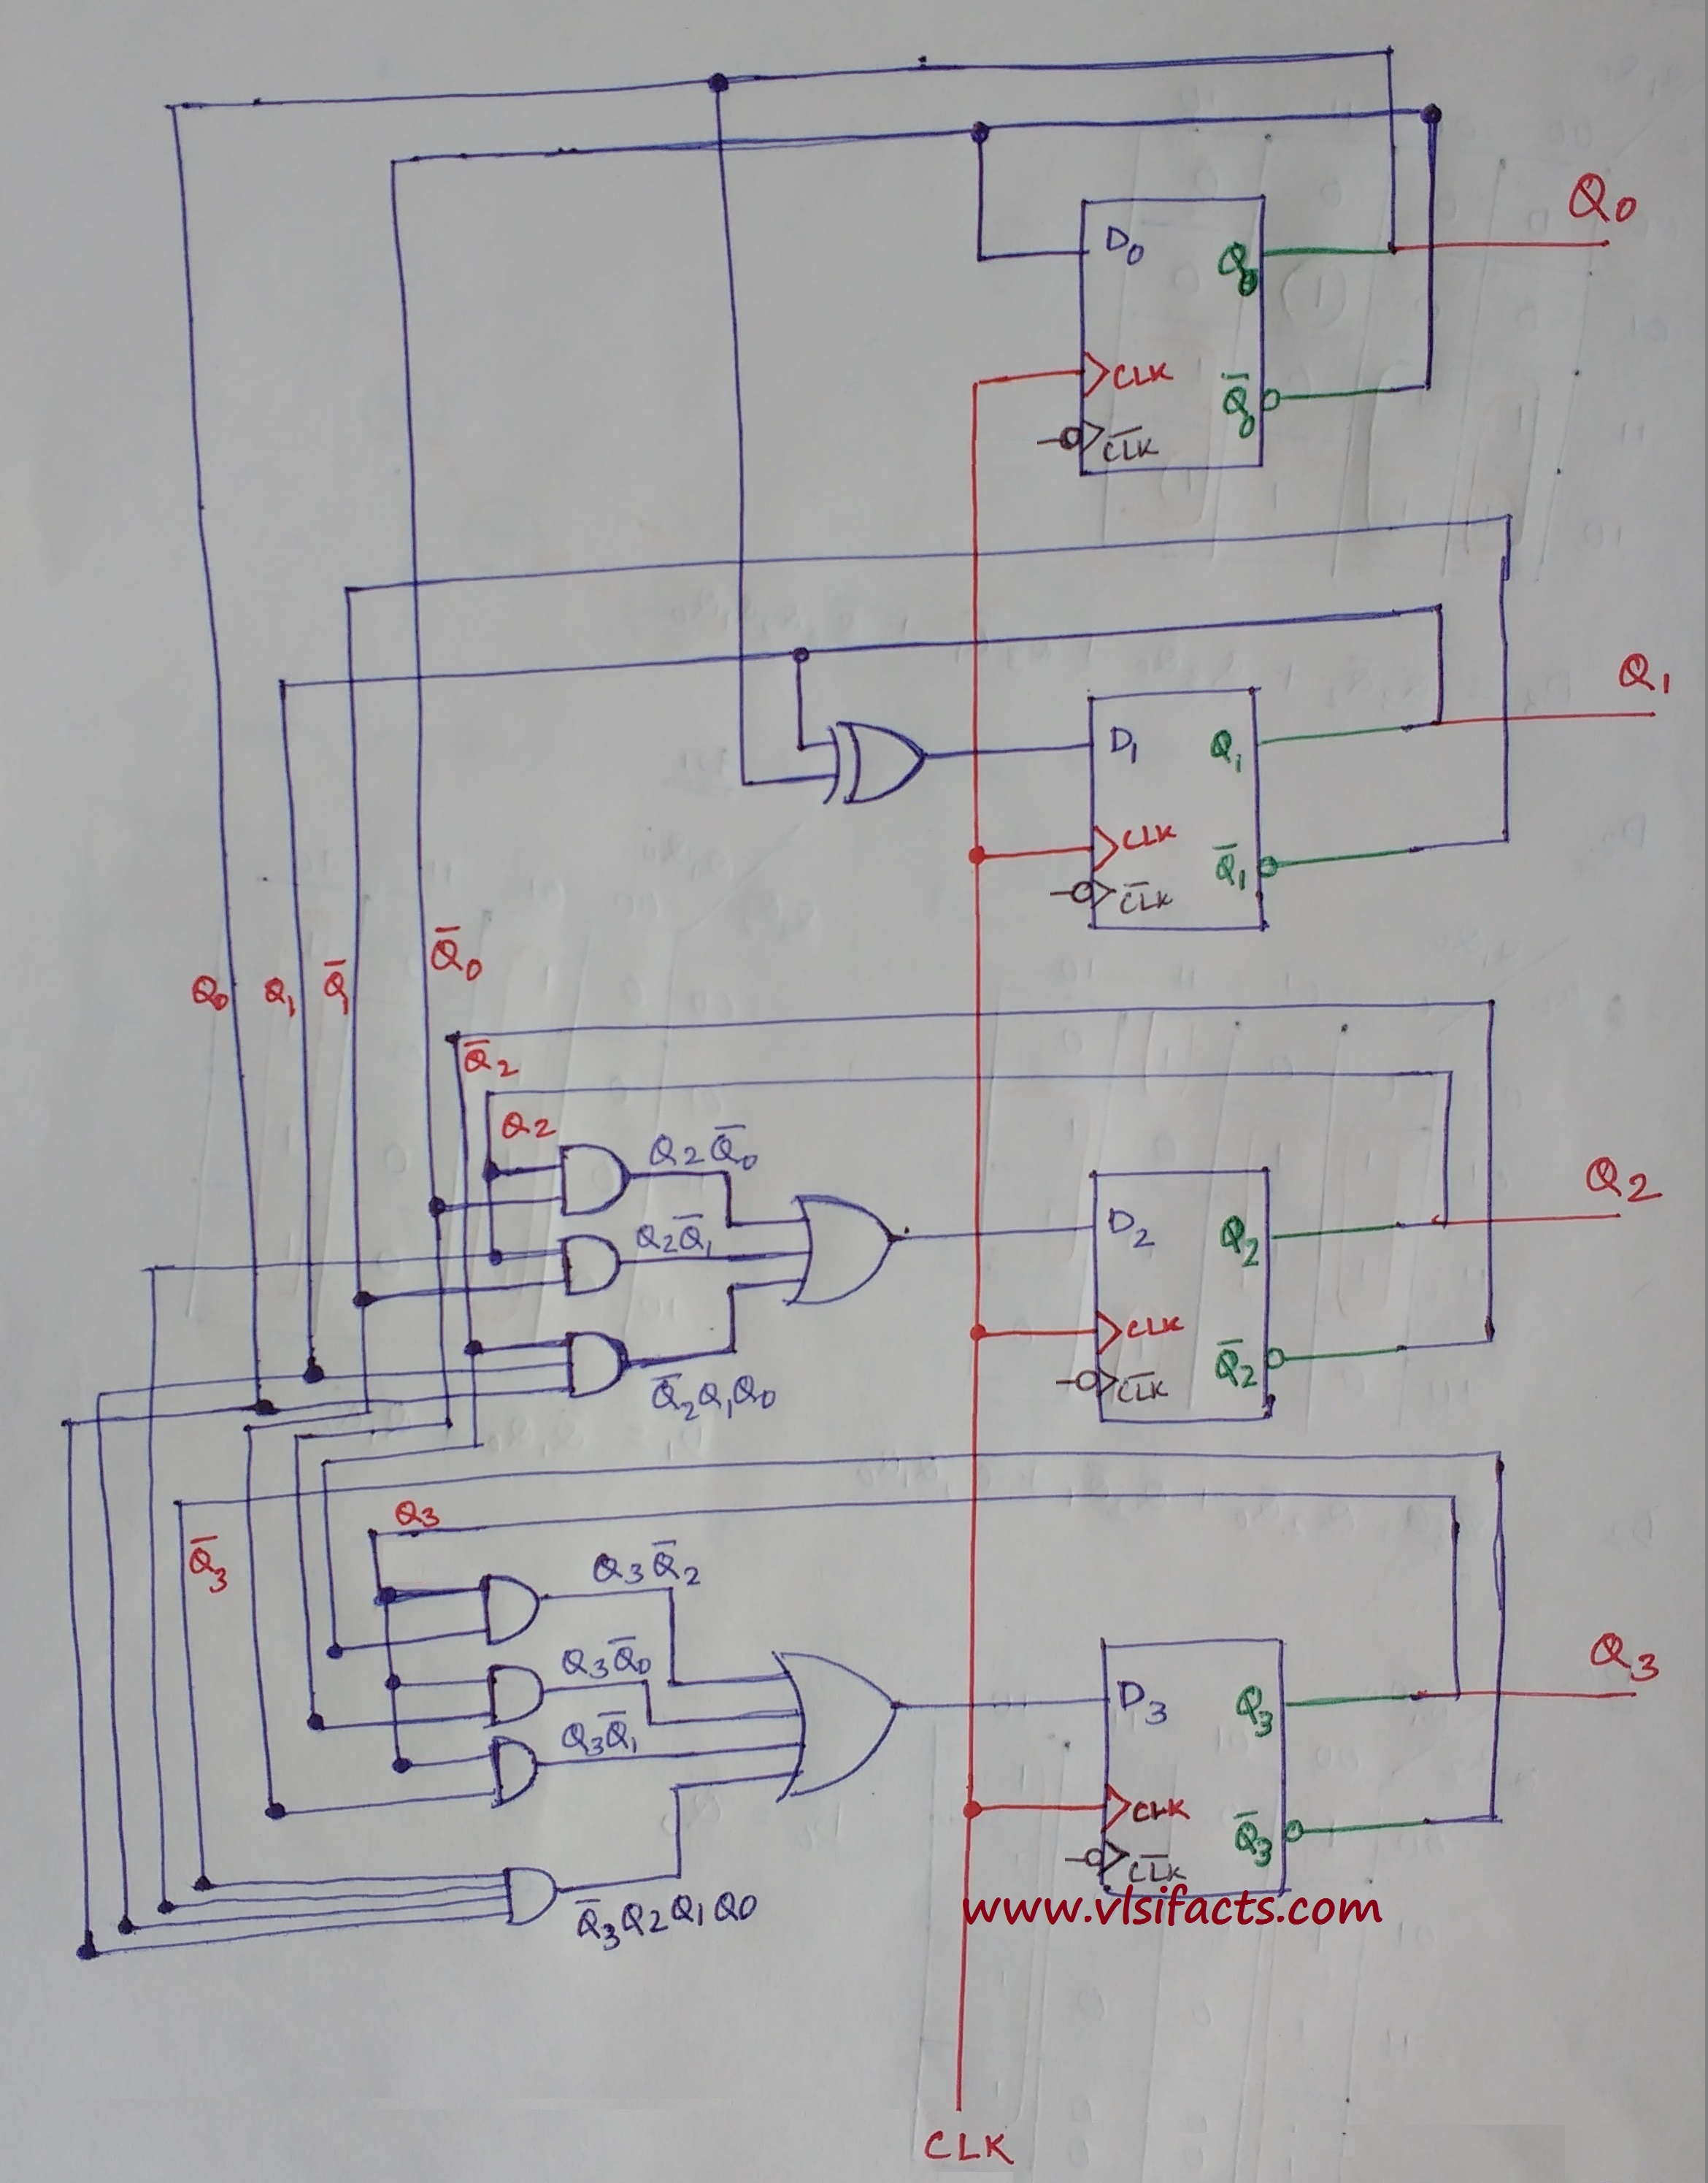 Logic Diagram Of Mod 10 Counter Wiring Library Gate Show State Transition Cheggcom 4 Bit Final Vlsif